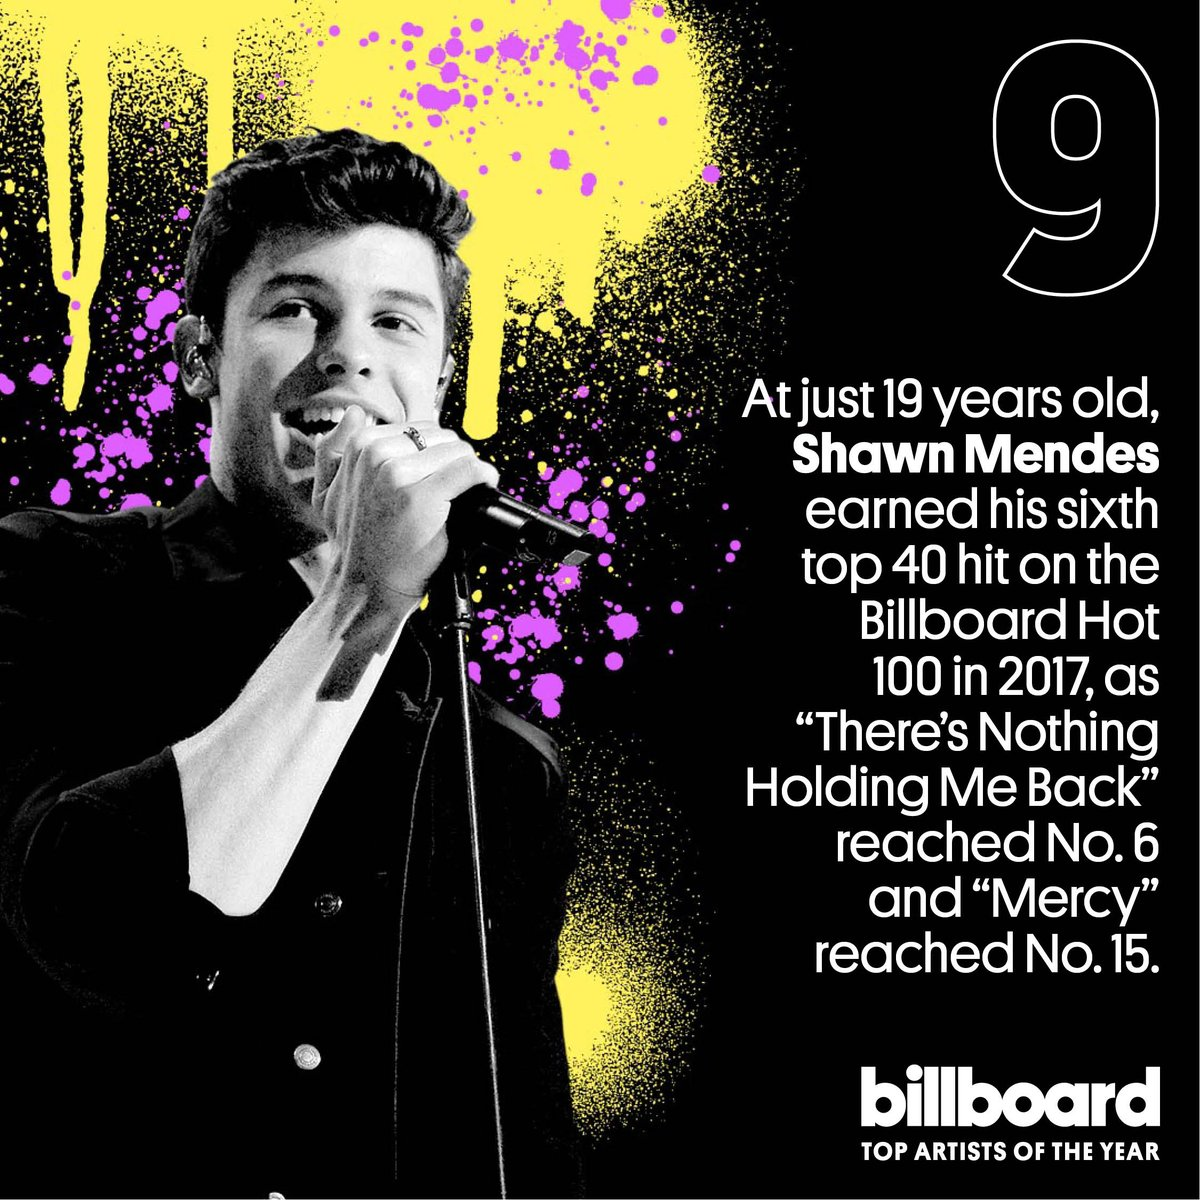 .@ShawnMendes comes in at No. 9 on our top artists of the year list! #YearInMusic https://t.co/luMRgEcwTi